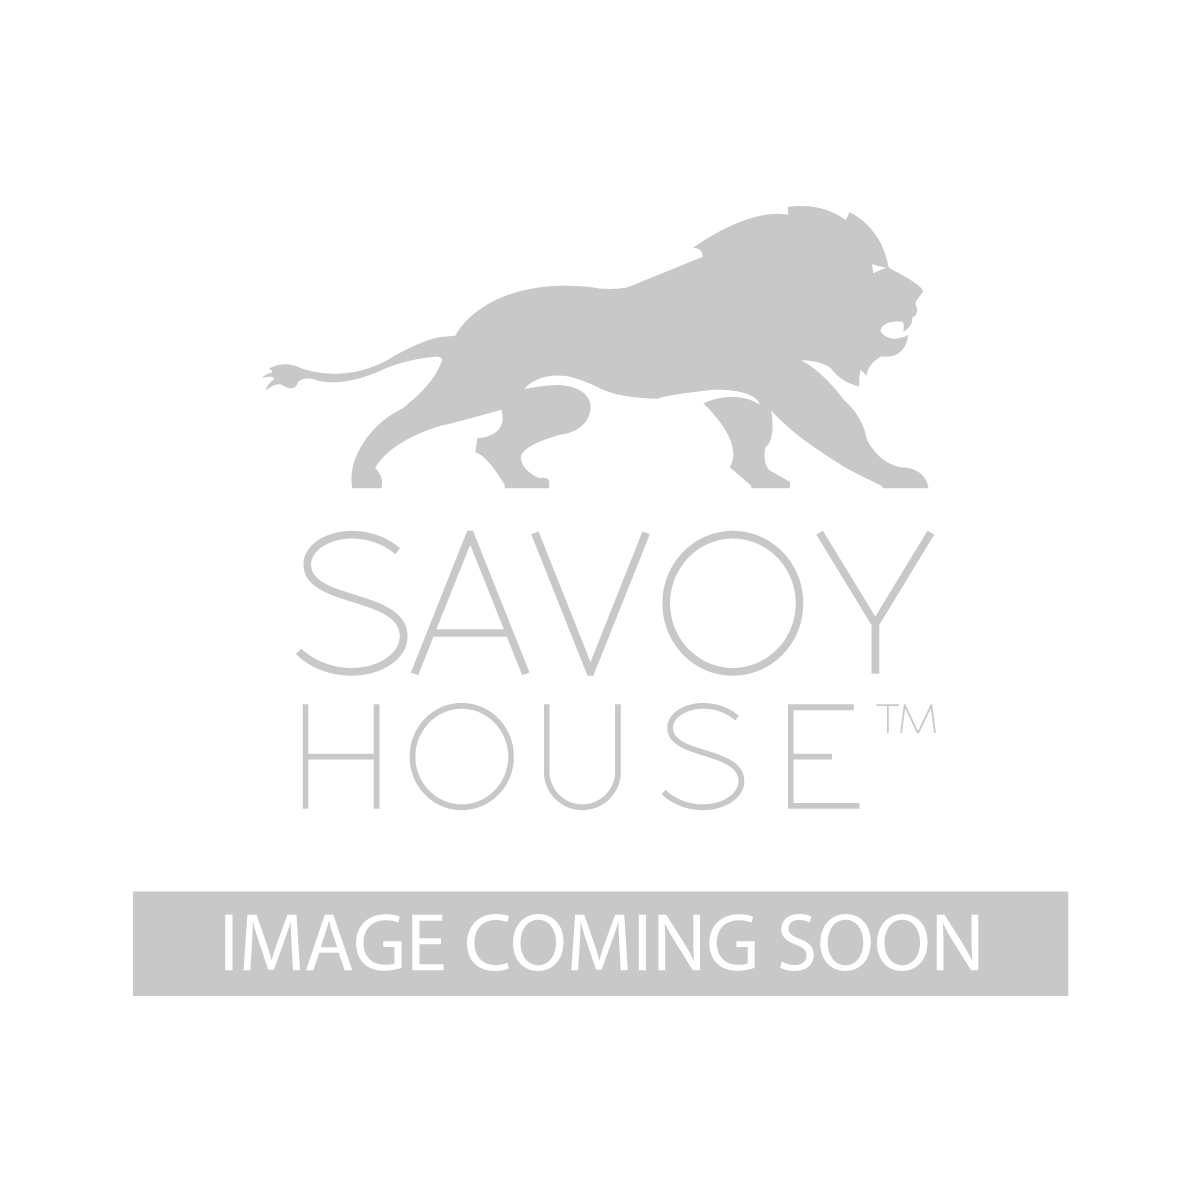 7 5784 1 69 Willoughby Mini Pendant By Savoy House